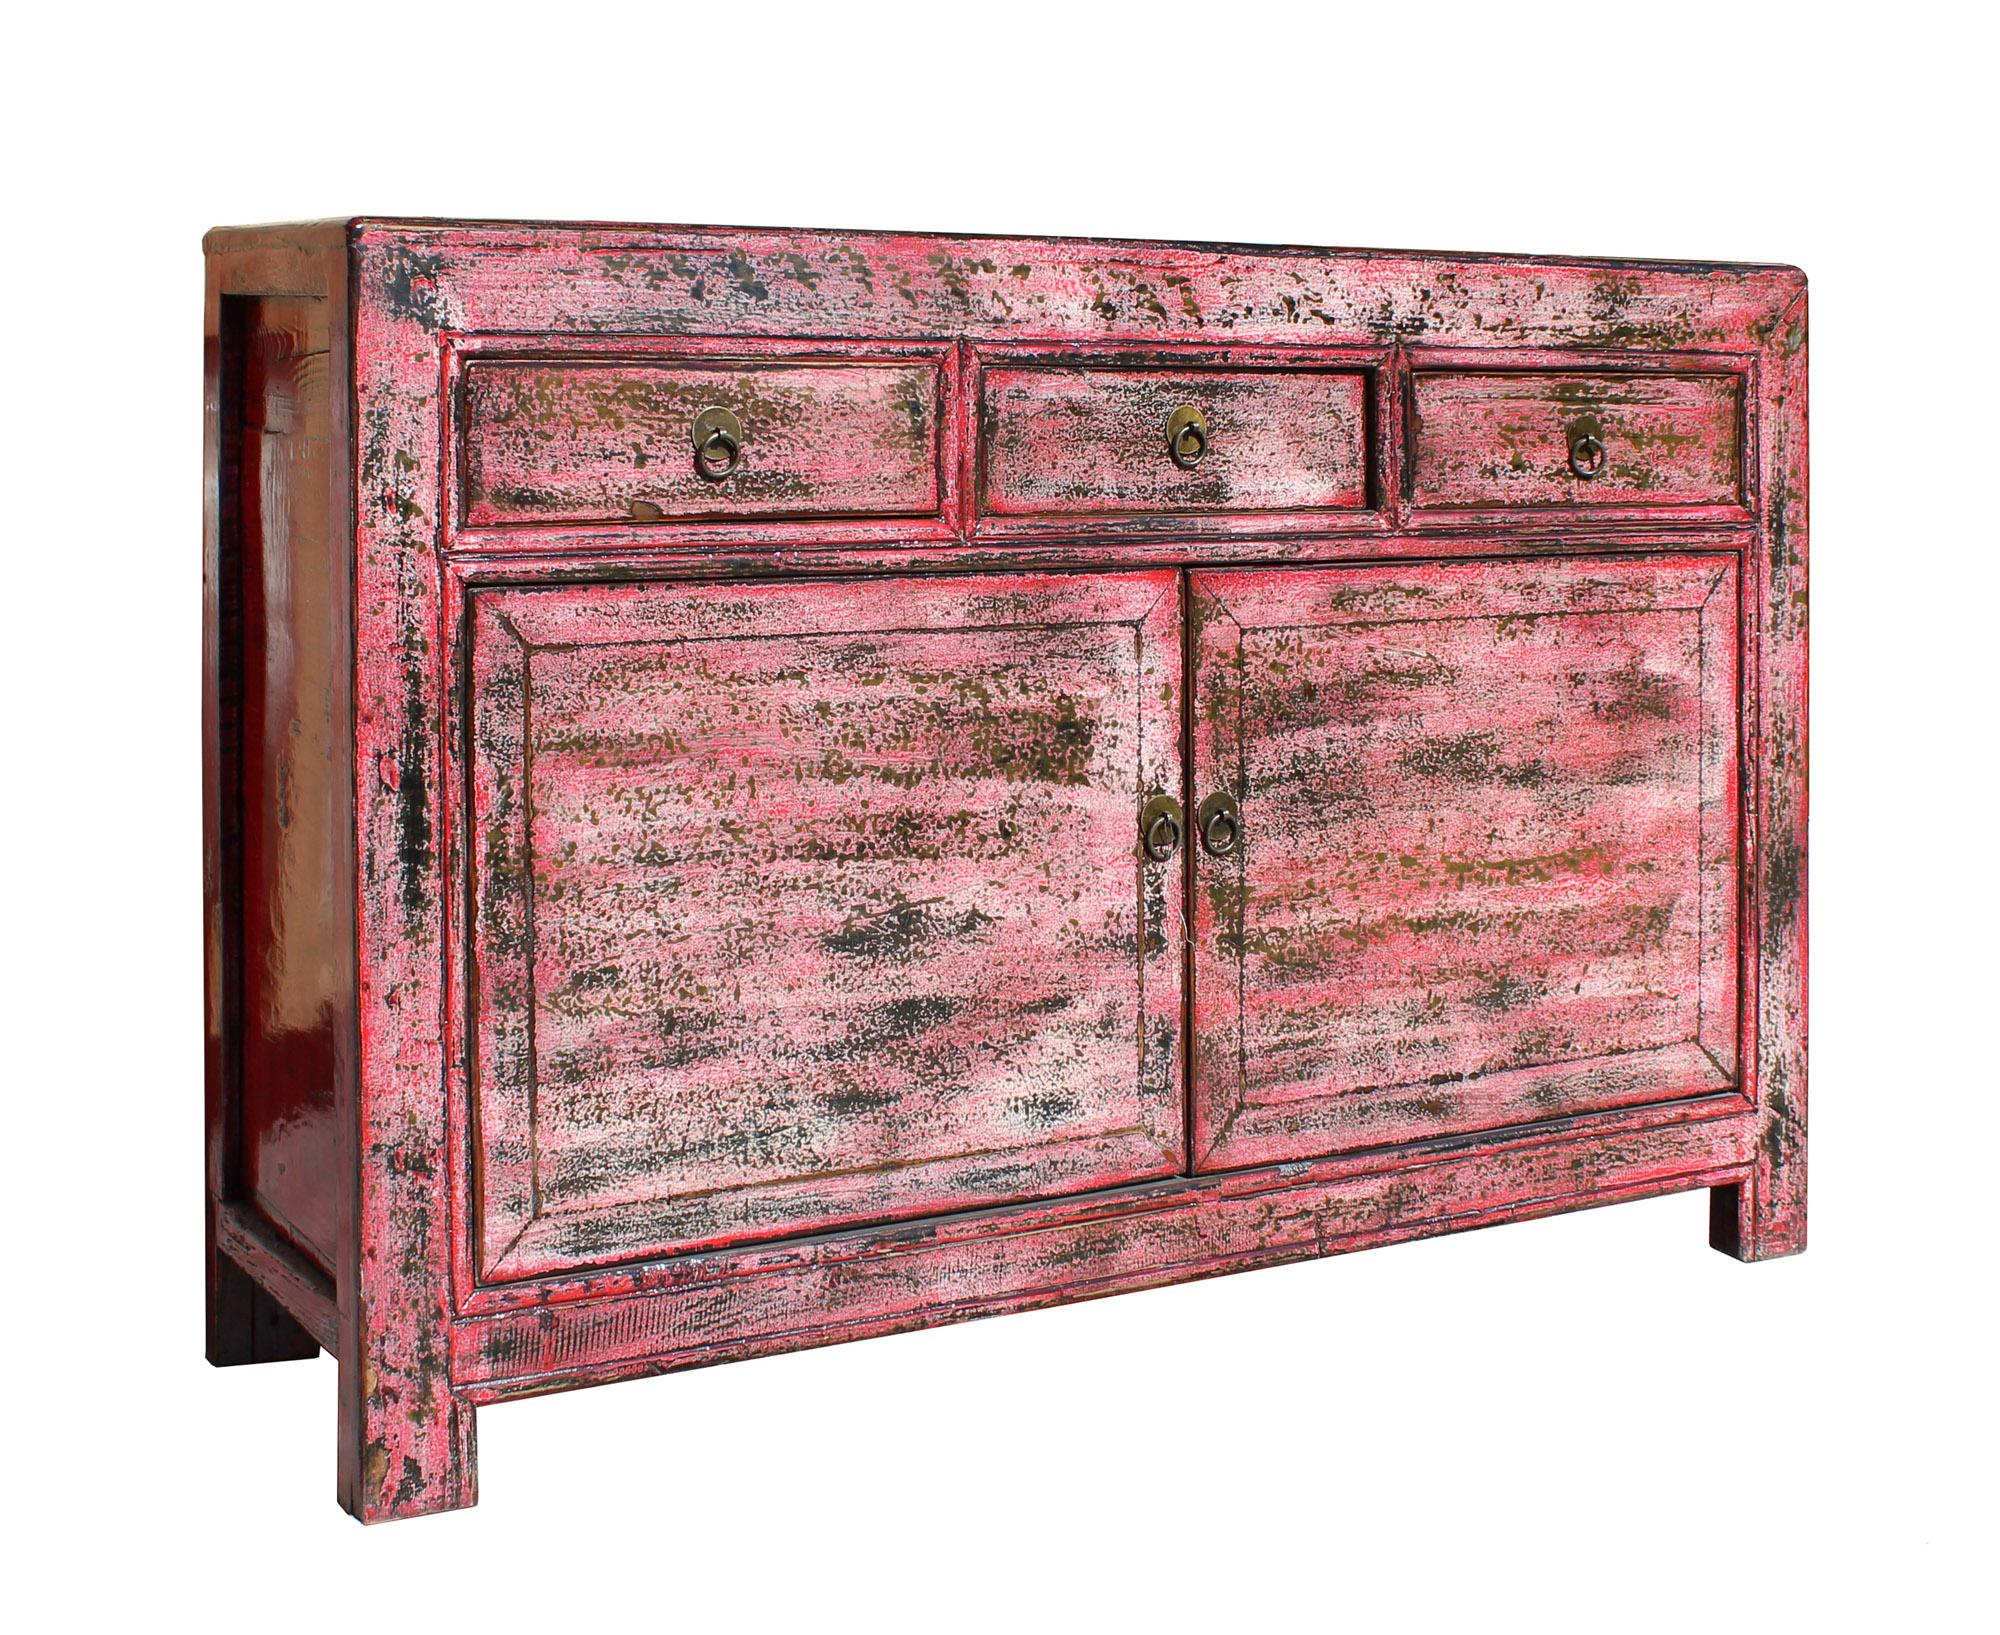 This Is A Sideboard Credenza Cabinet Table With Three Drawers And  Compartment Storage. It Is